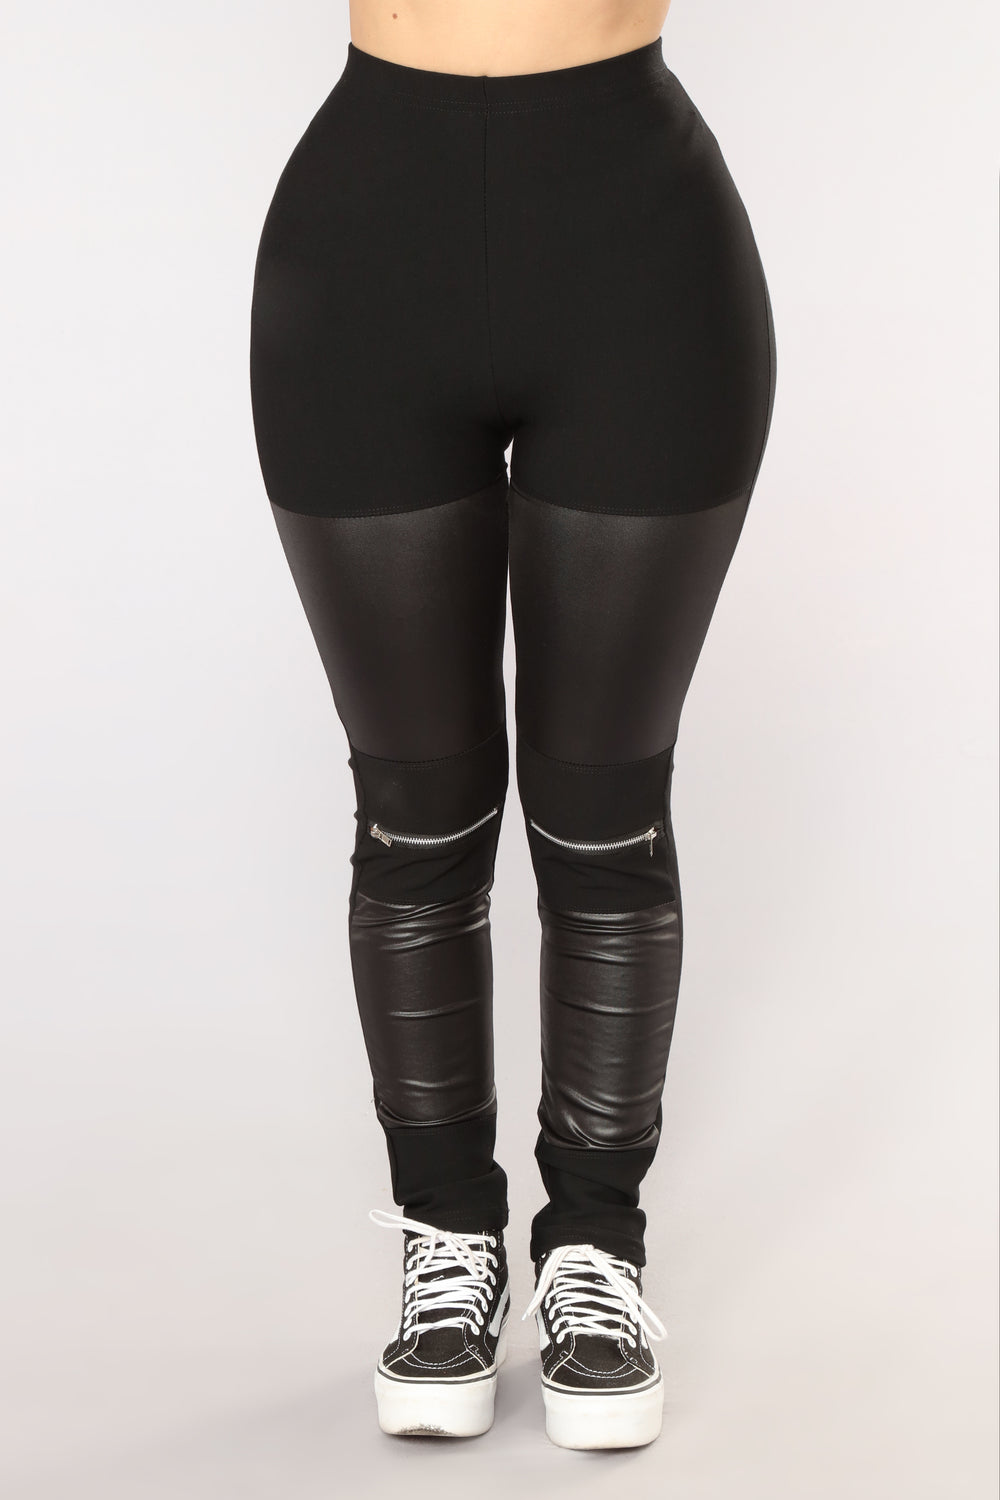 Keira Moto Zip Leggings - Black